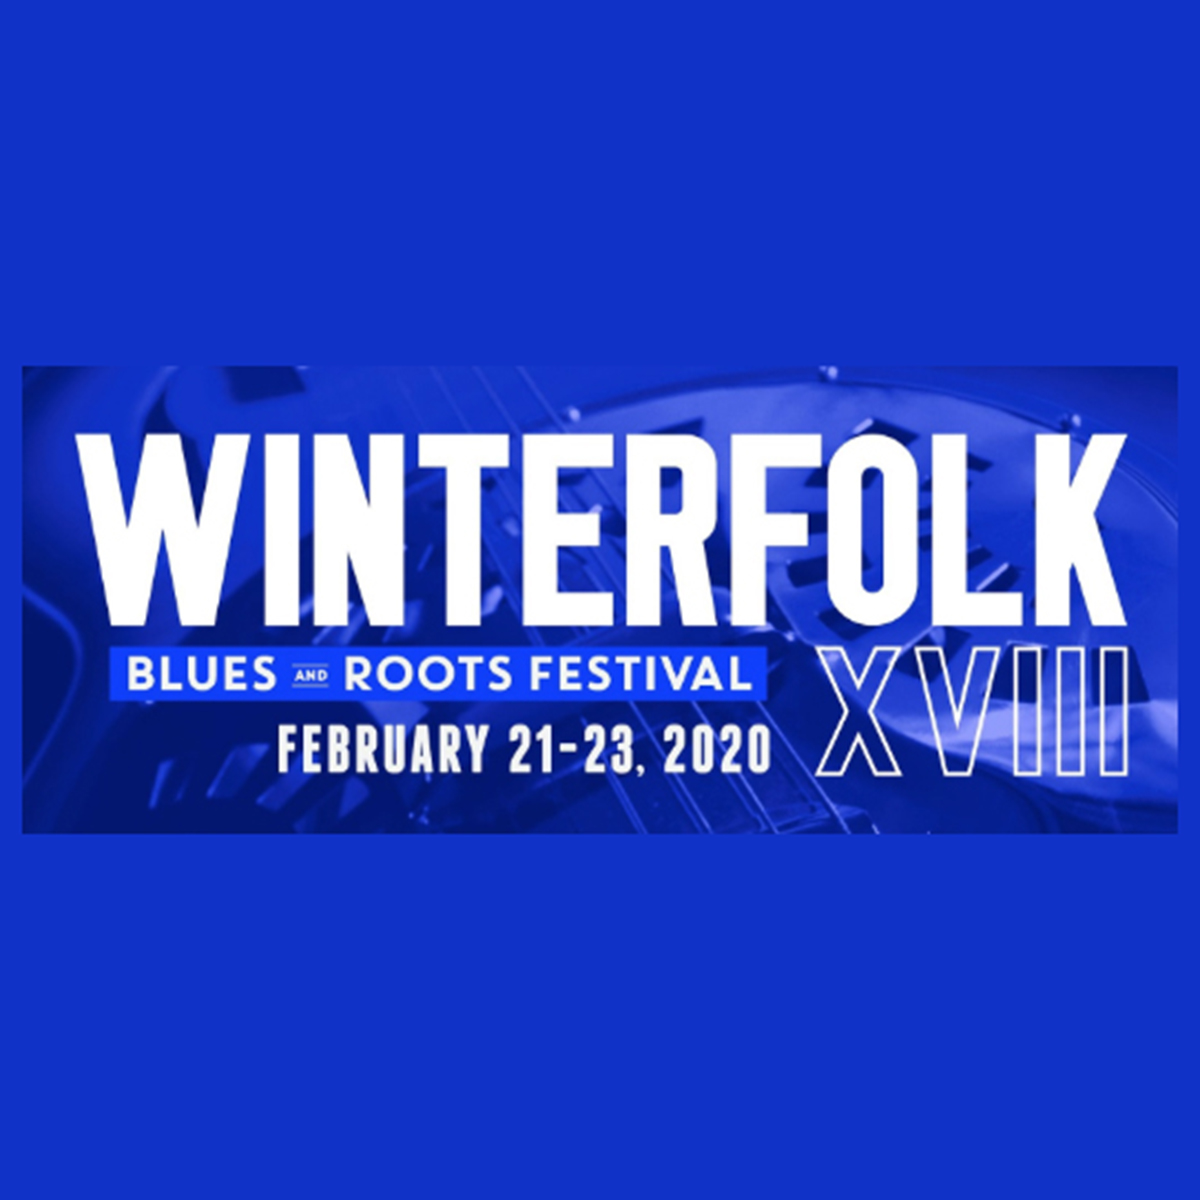 Toronto's 18th Annual Winterfolk Blues and Roots Festival Sets the Stage for 2020